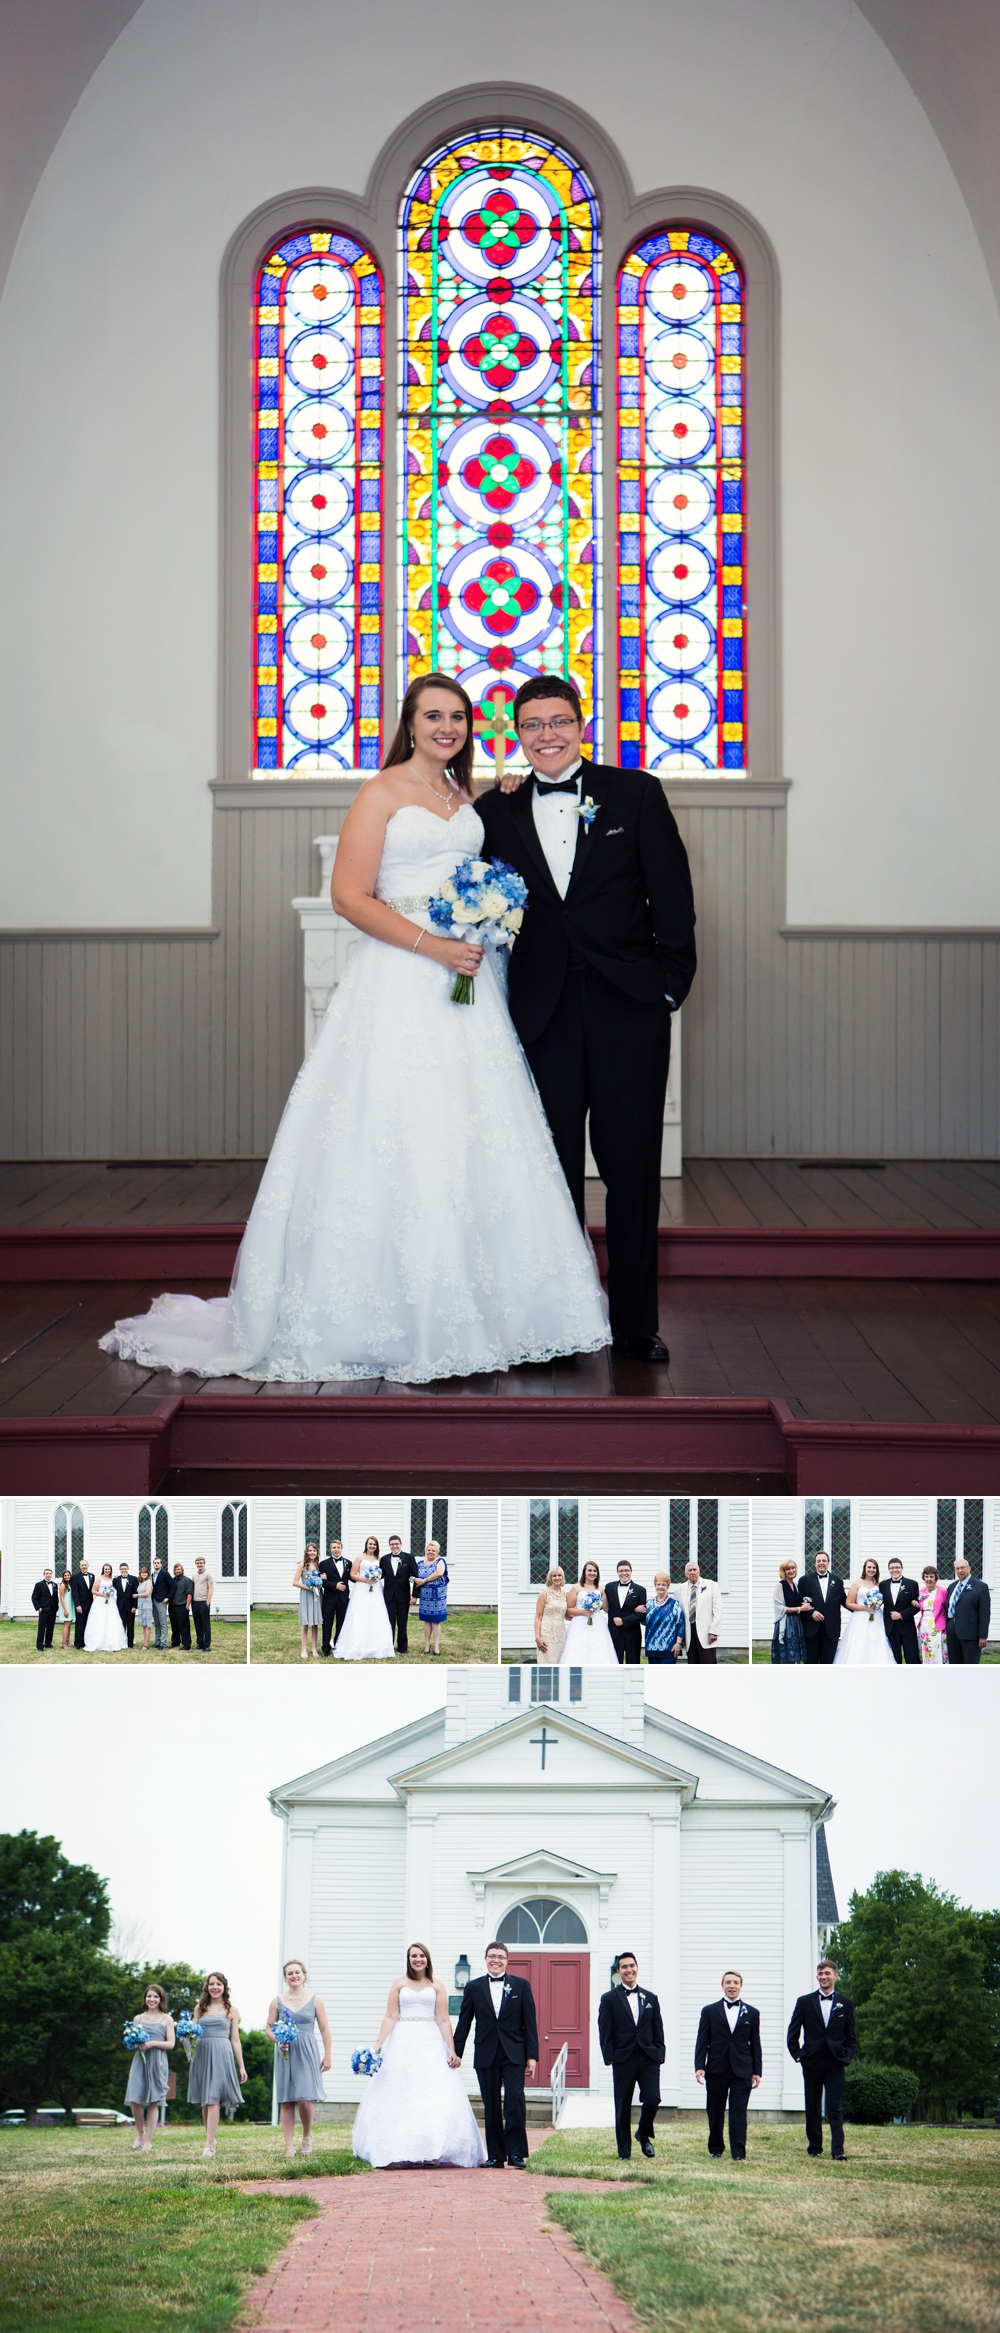 Wedding Photography Youngstown Oh Wedding Costs Germany The